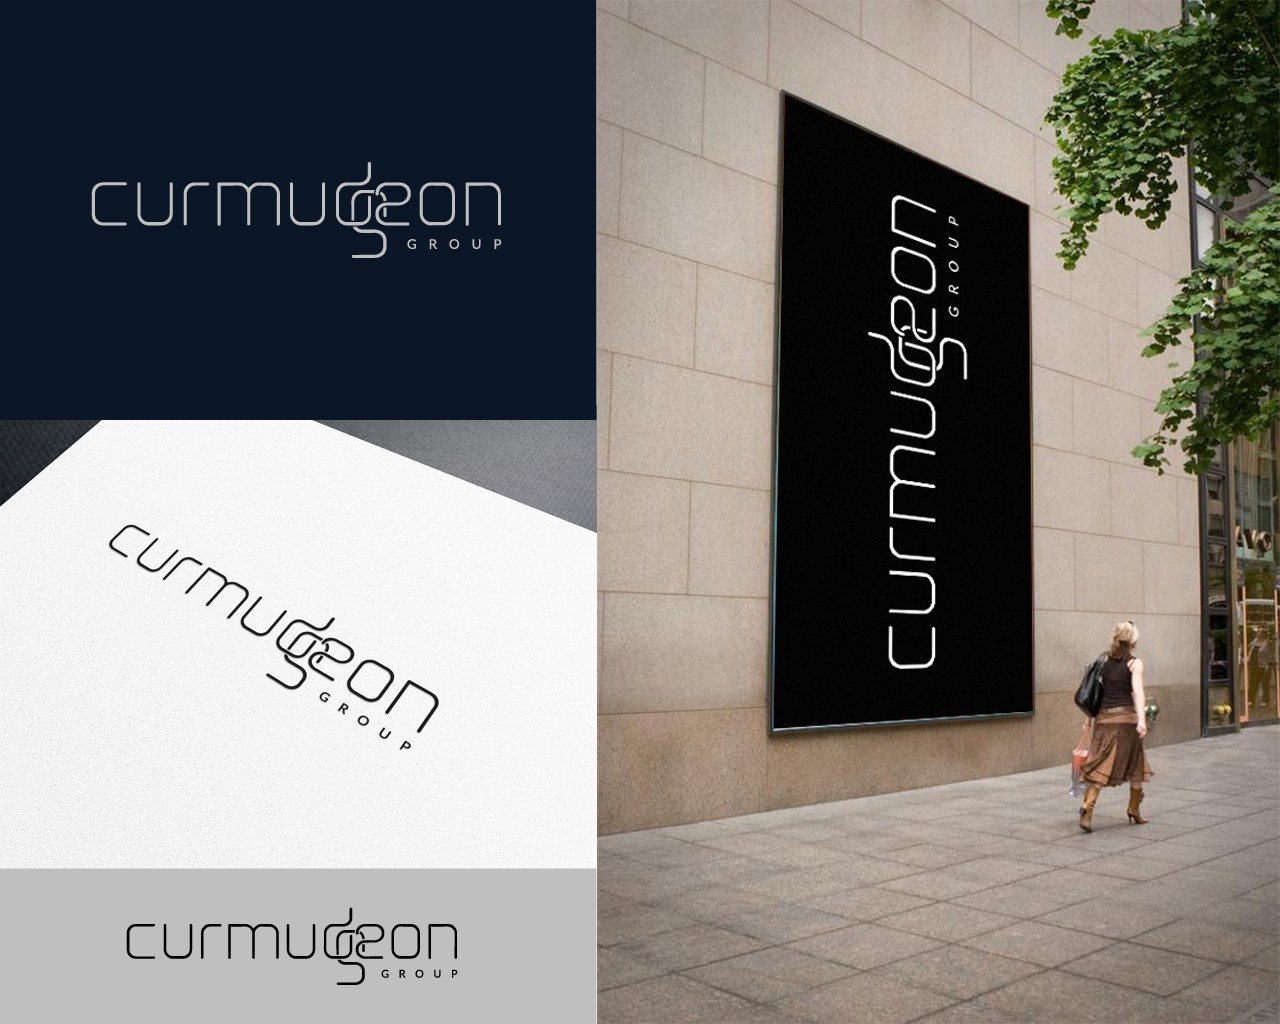 Create the Curmudgeon logo - what a name!